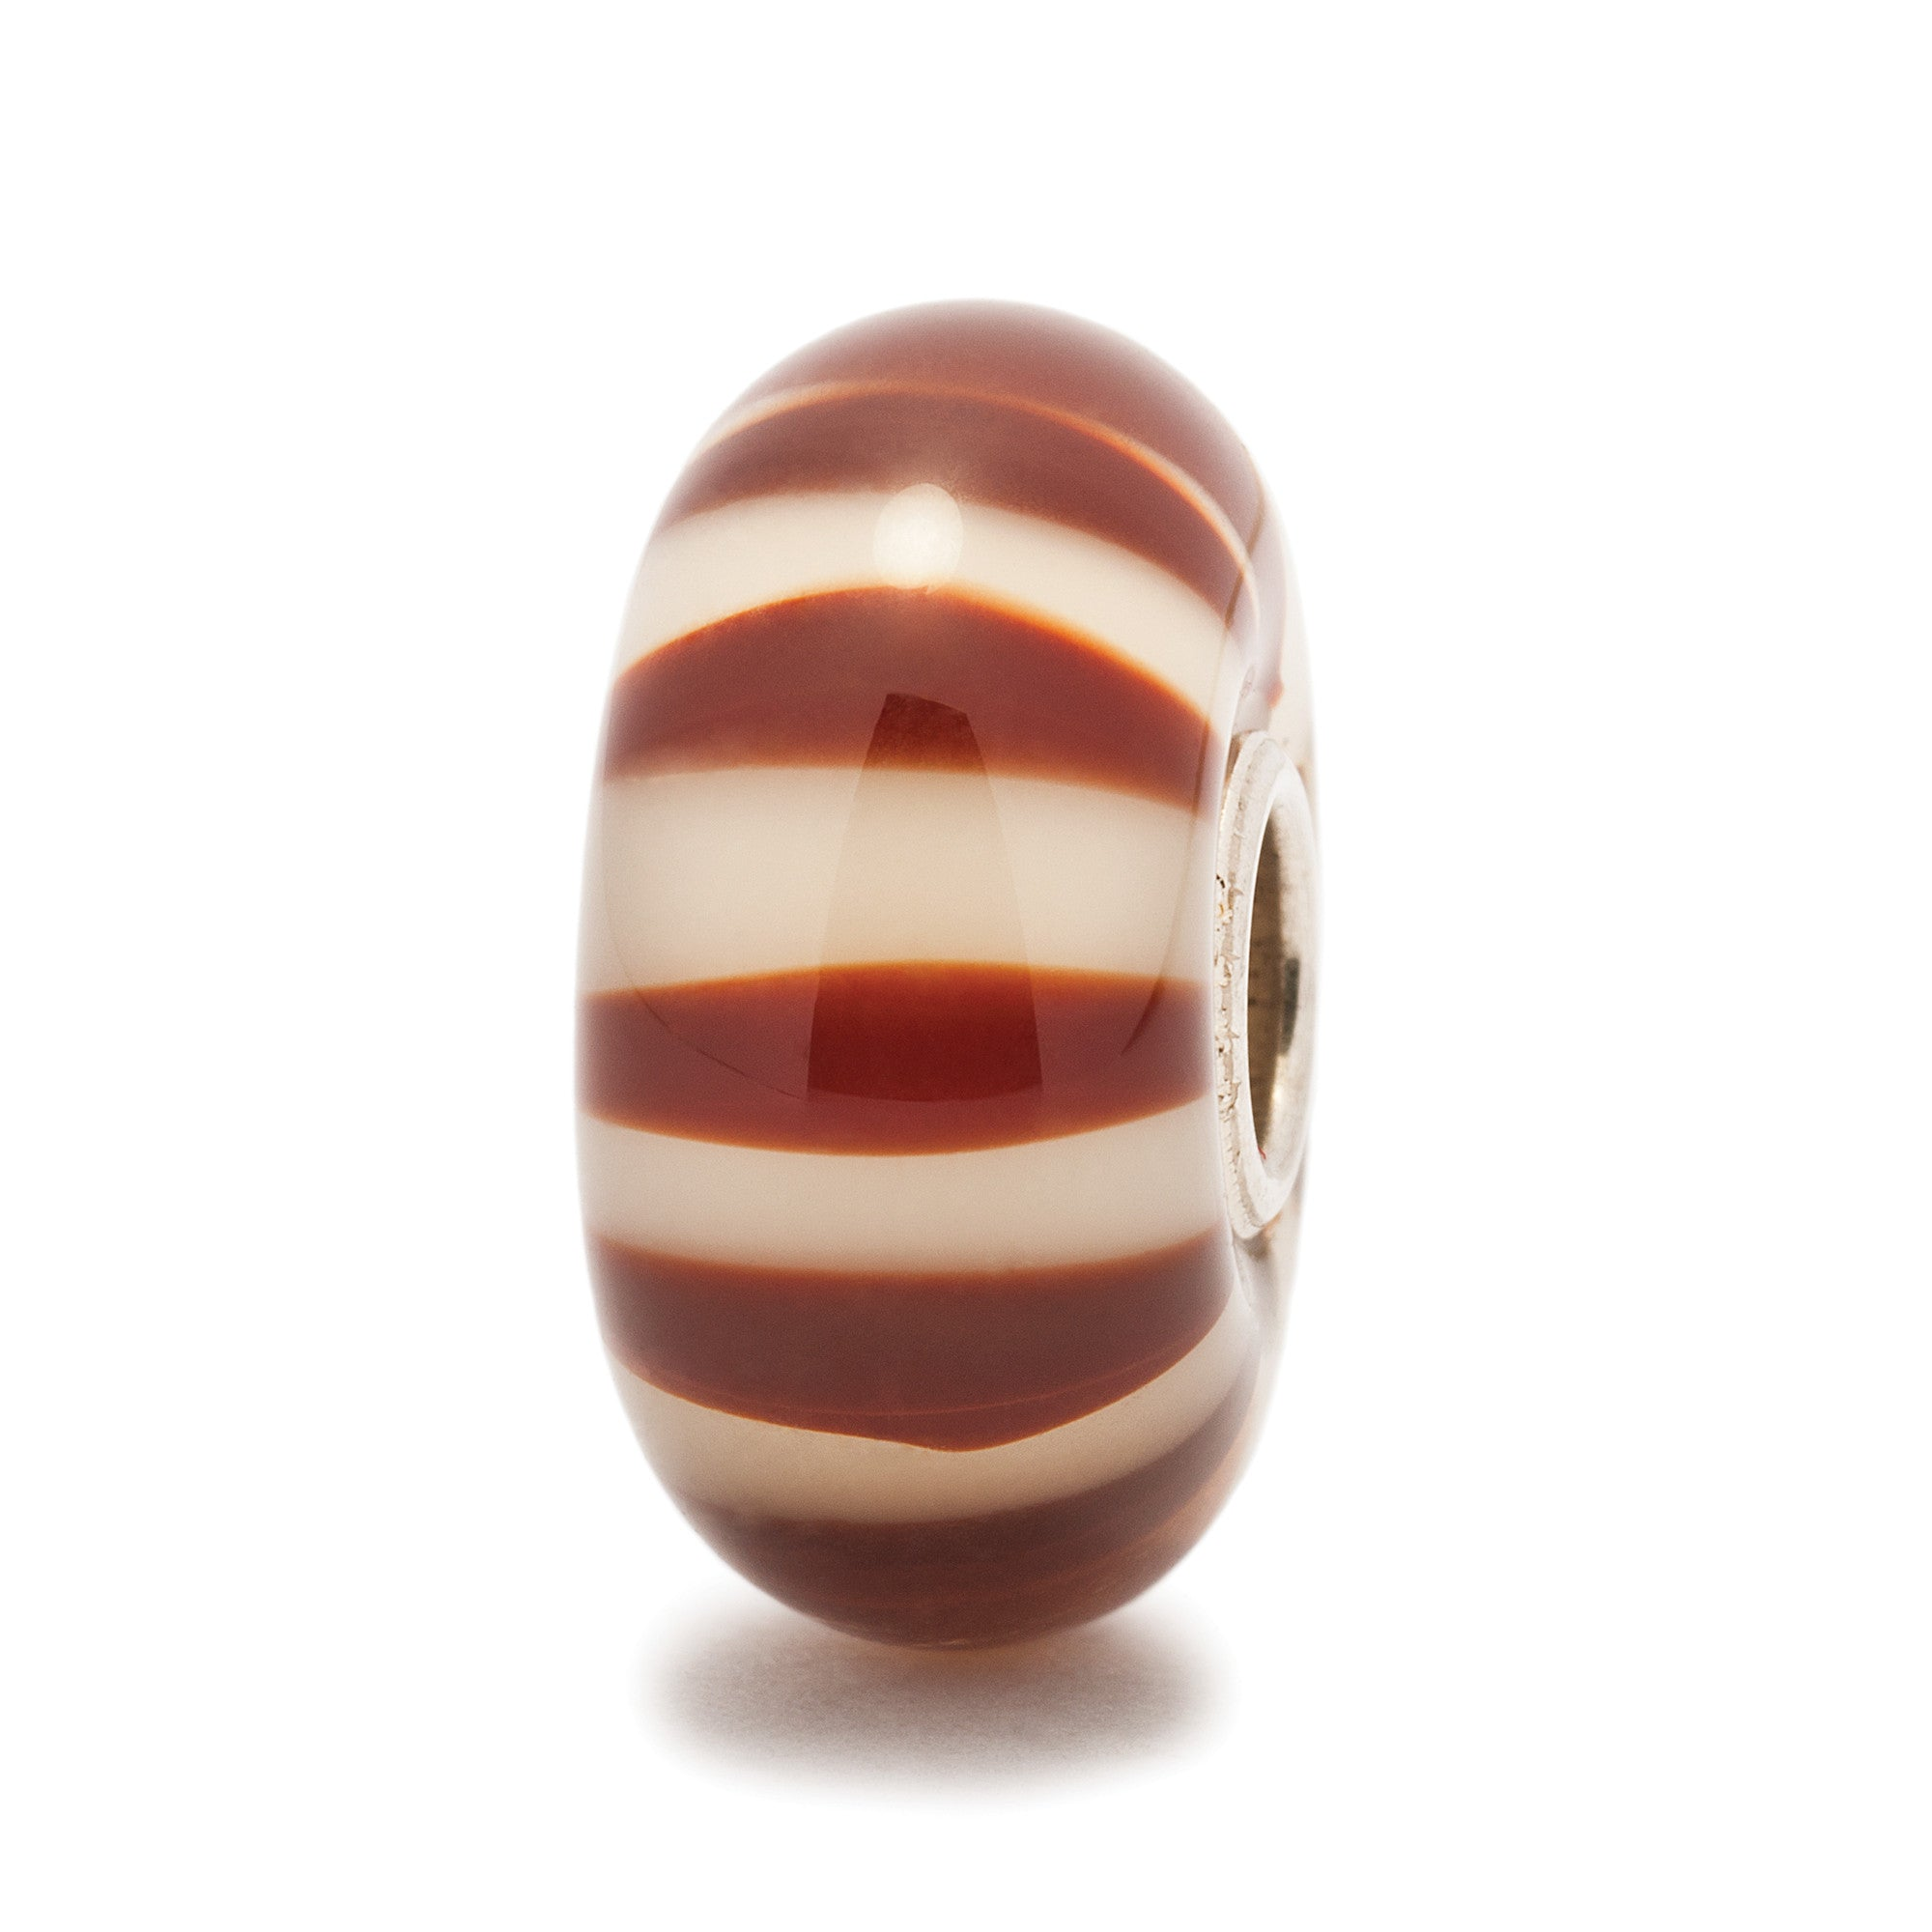 Trollbeads Bead Glass Chocolate Stripe